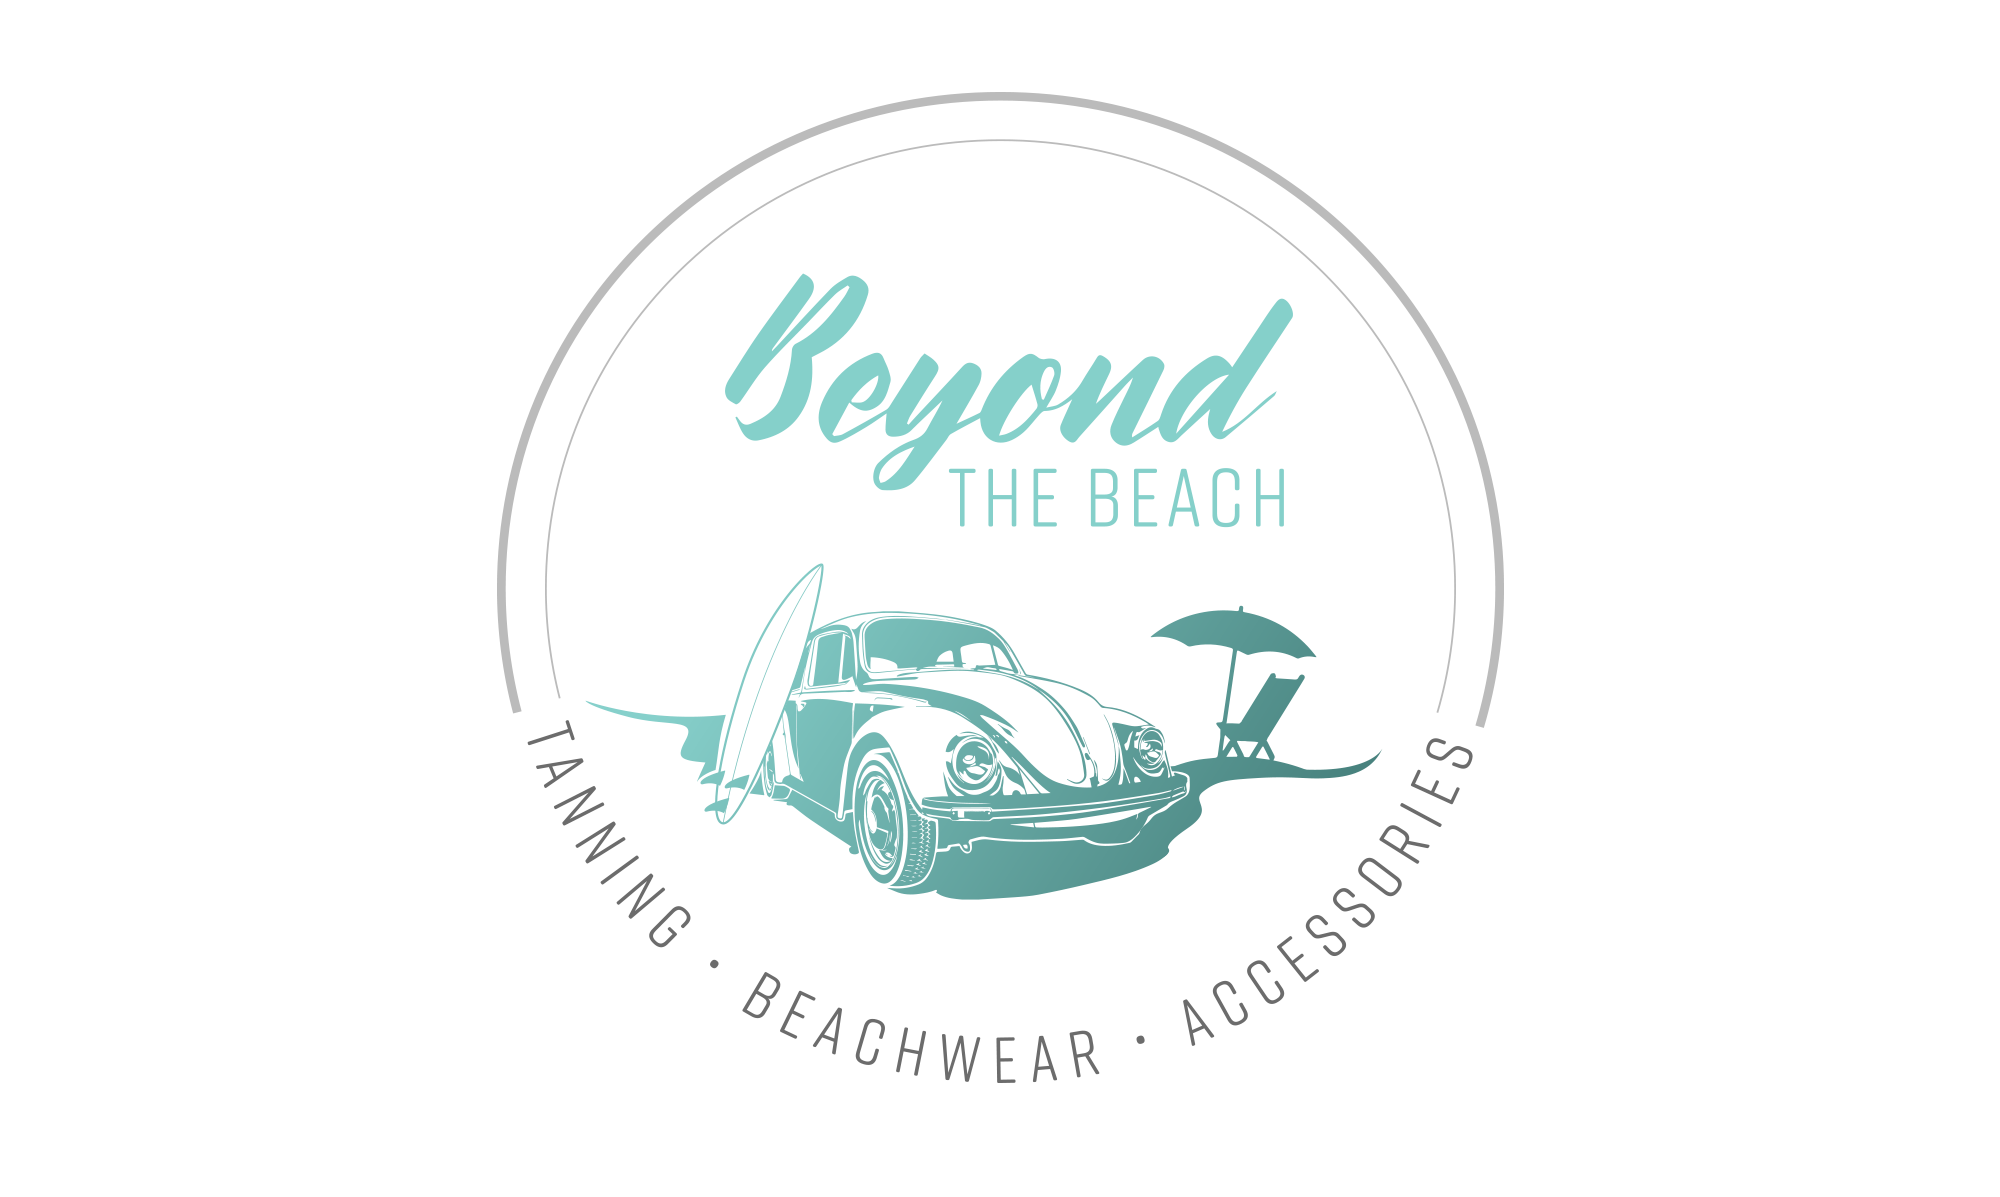 Sample image of logo design for Beyond the Beach.